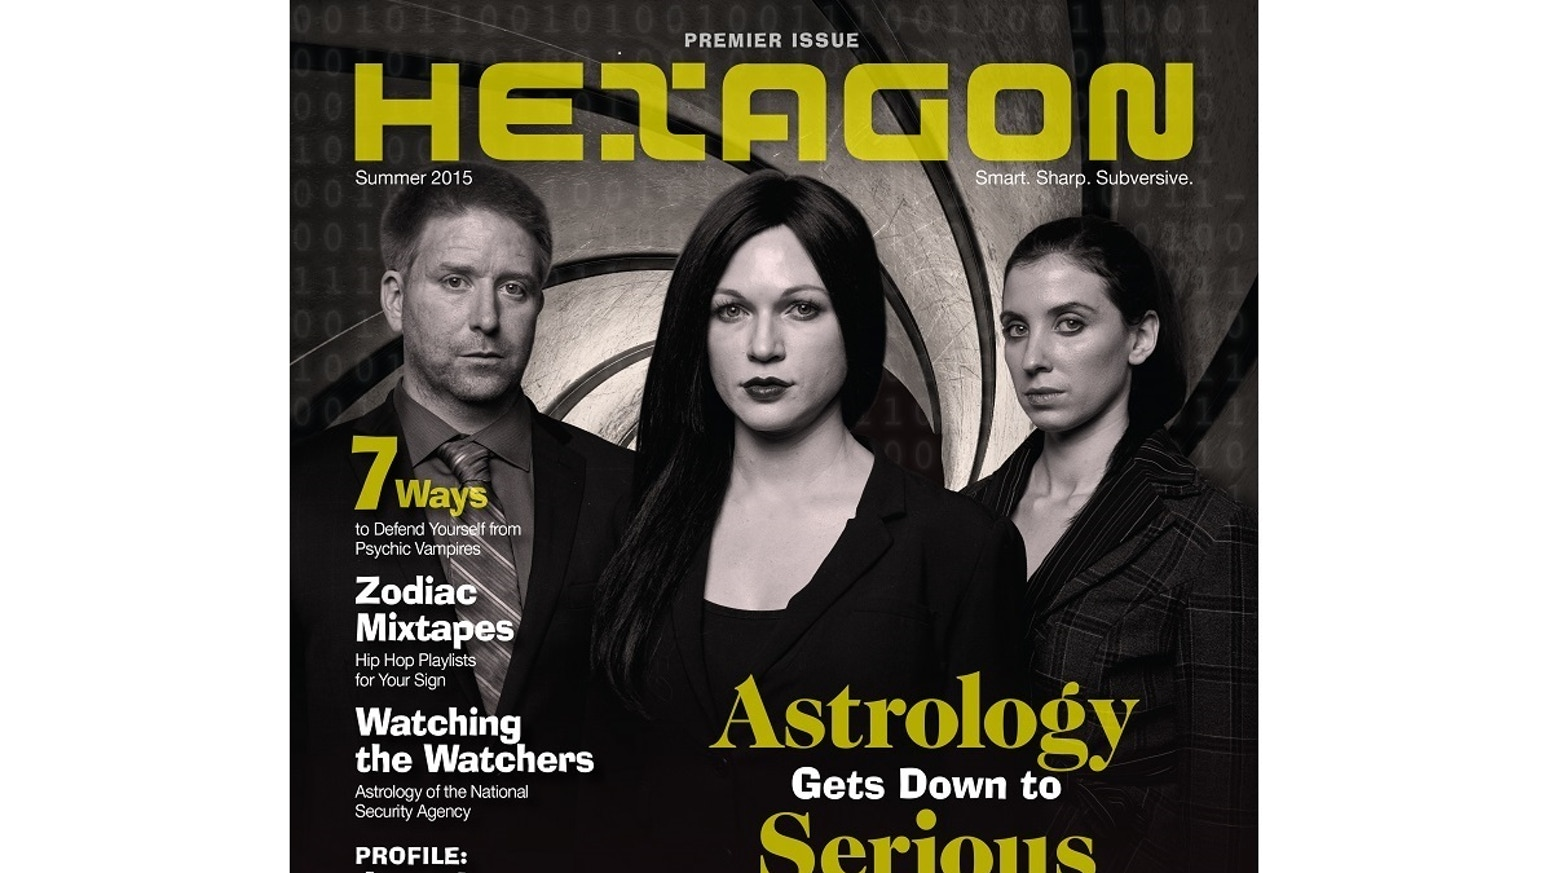 Brand new print astrology magazine designed to absolutely knock people's socks off. Smart, sharp, and with a seriously subversive edge.